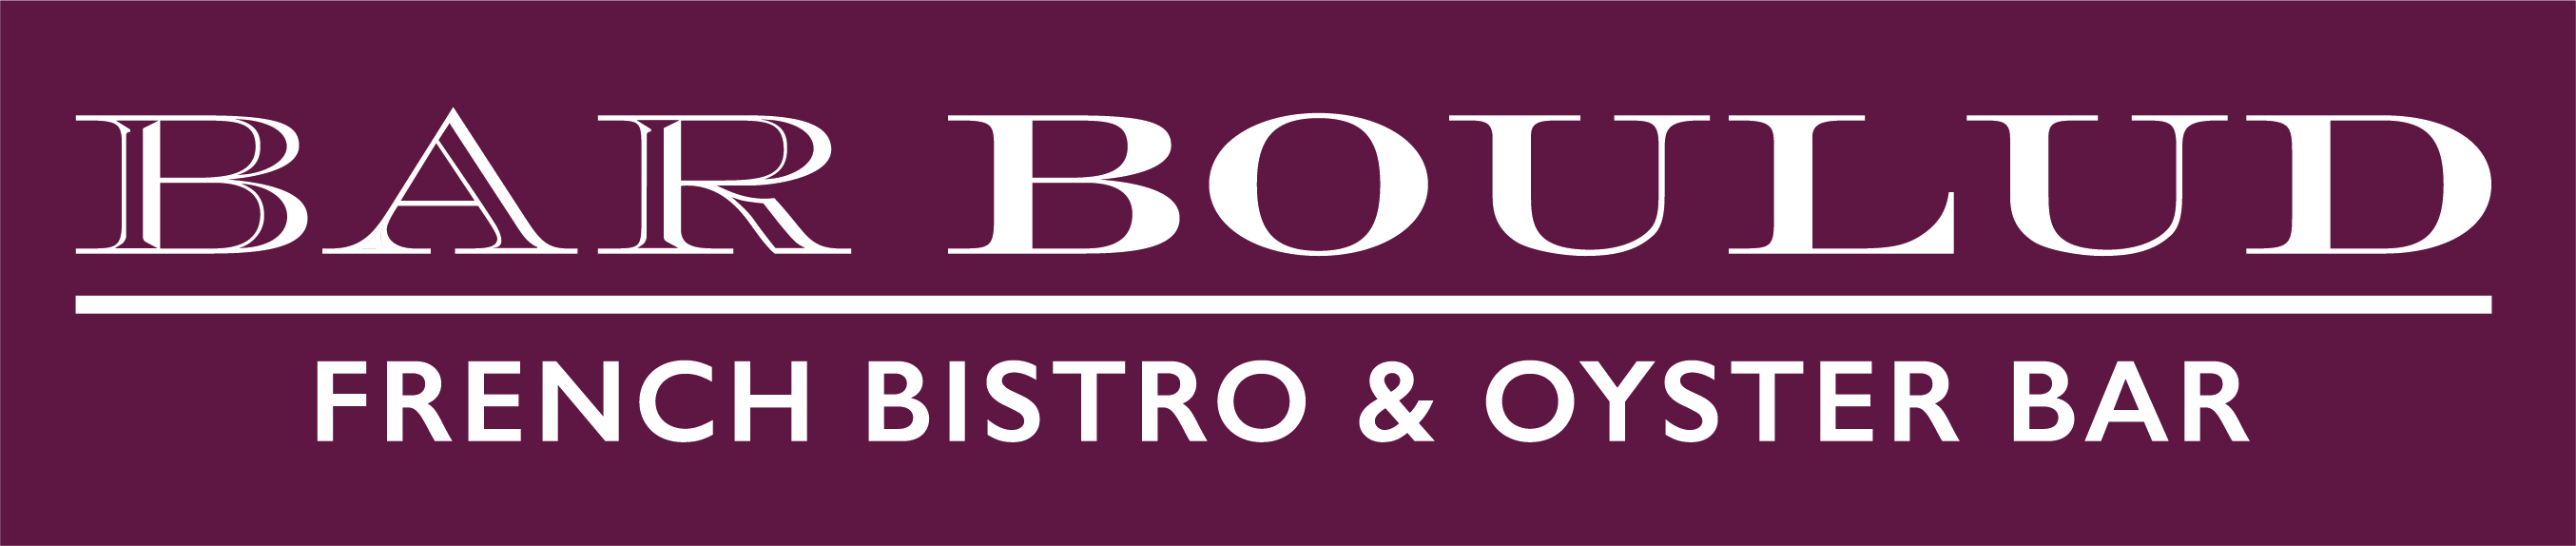 Bar Boulud French Bistro & Oyster Bar Logo